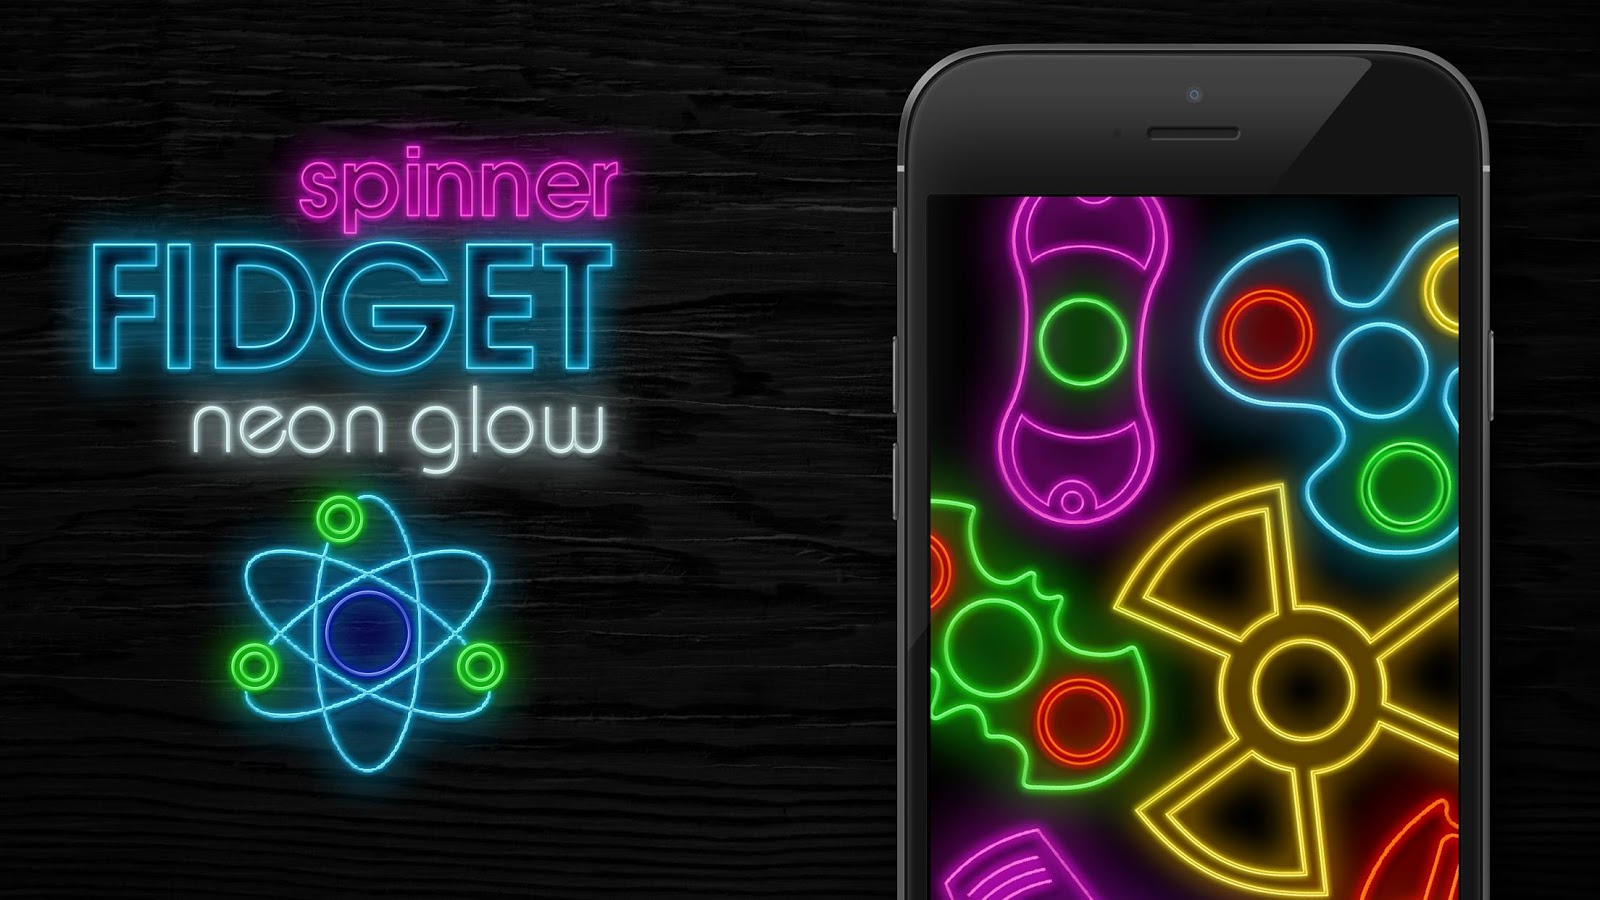 Fidget Spinner Neon Glow Android Apps On Google Play